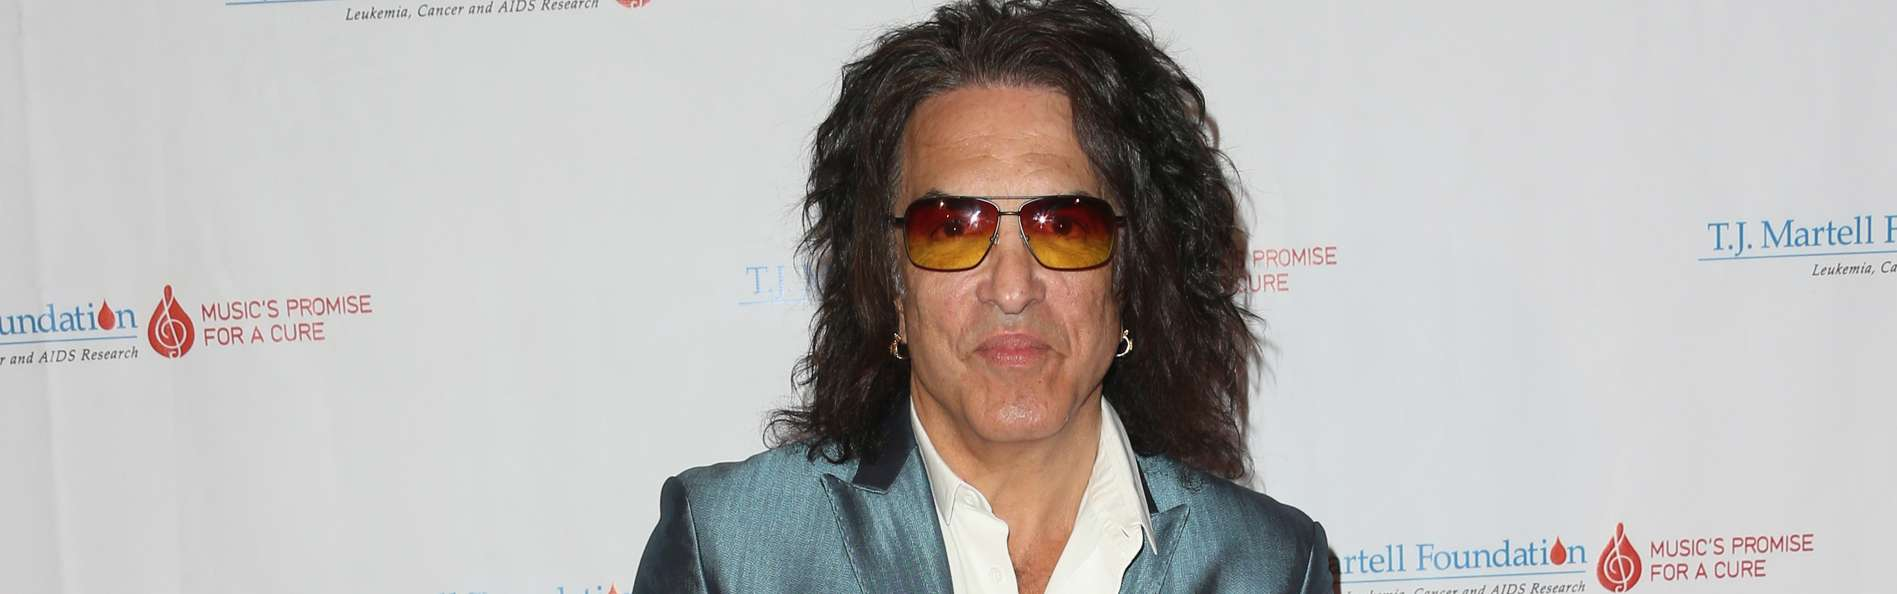 Paul Stanley Foto: Getty Images